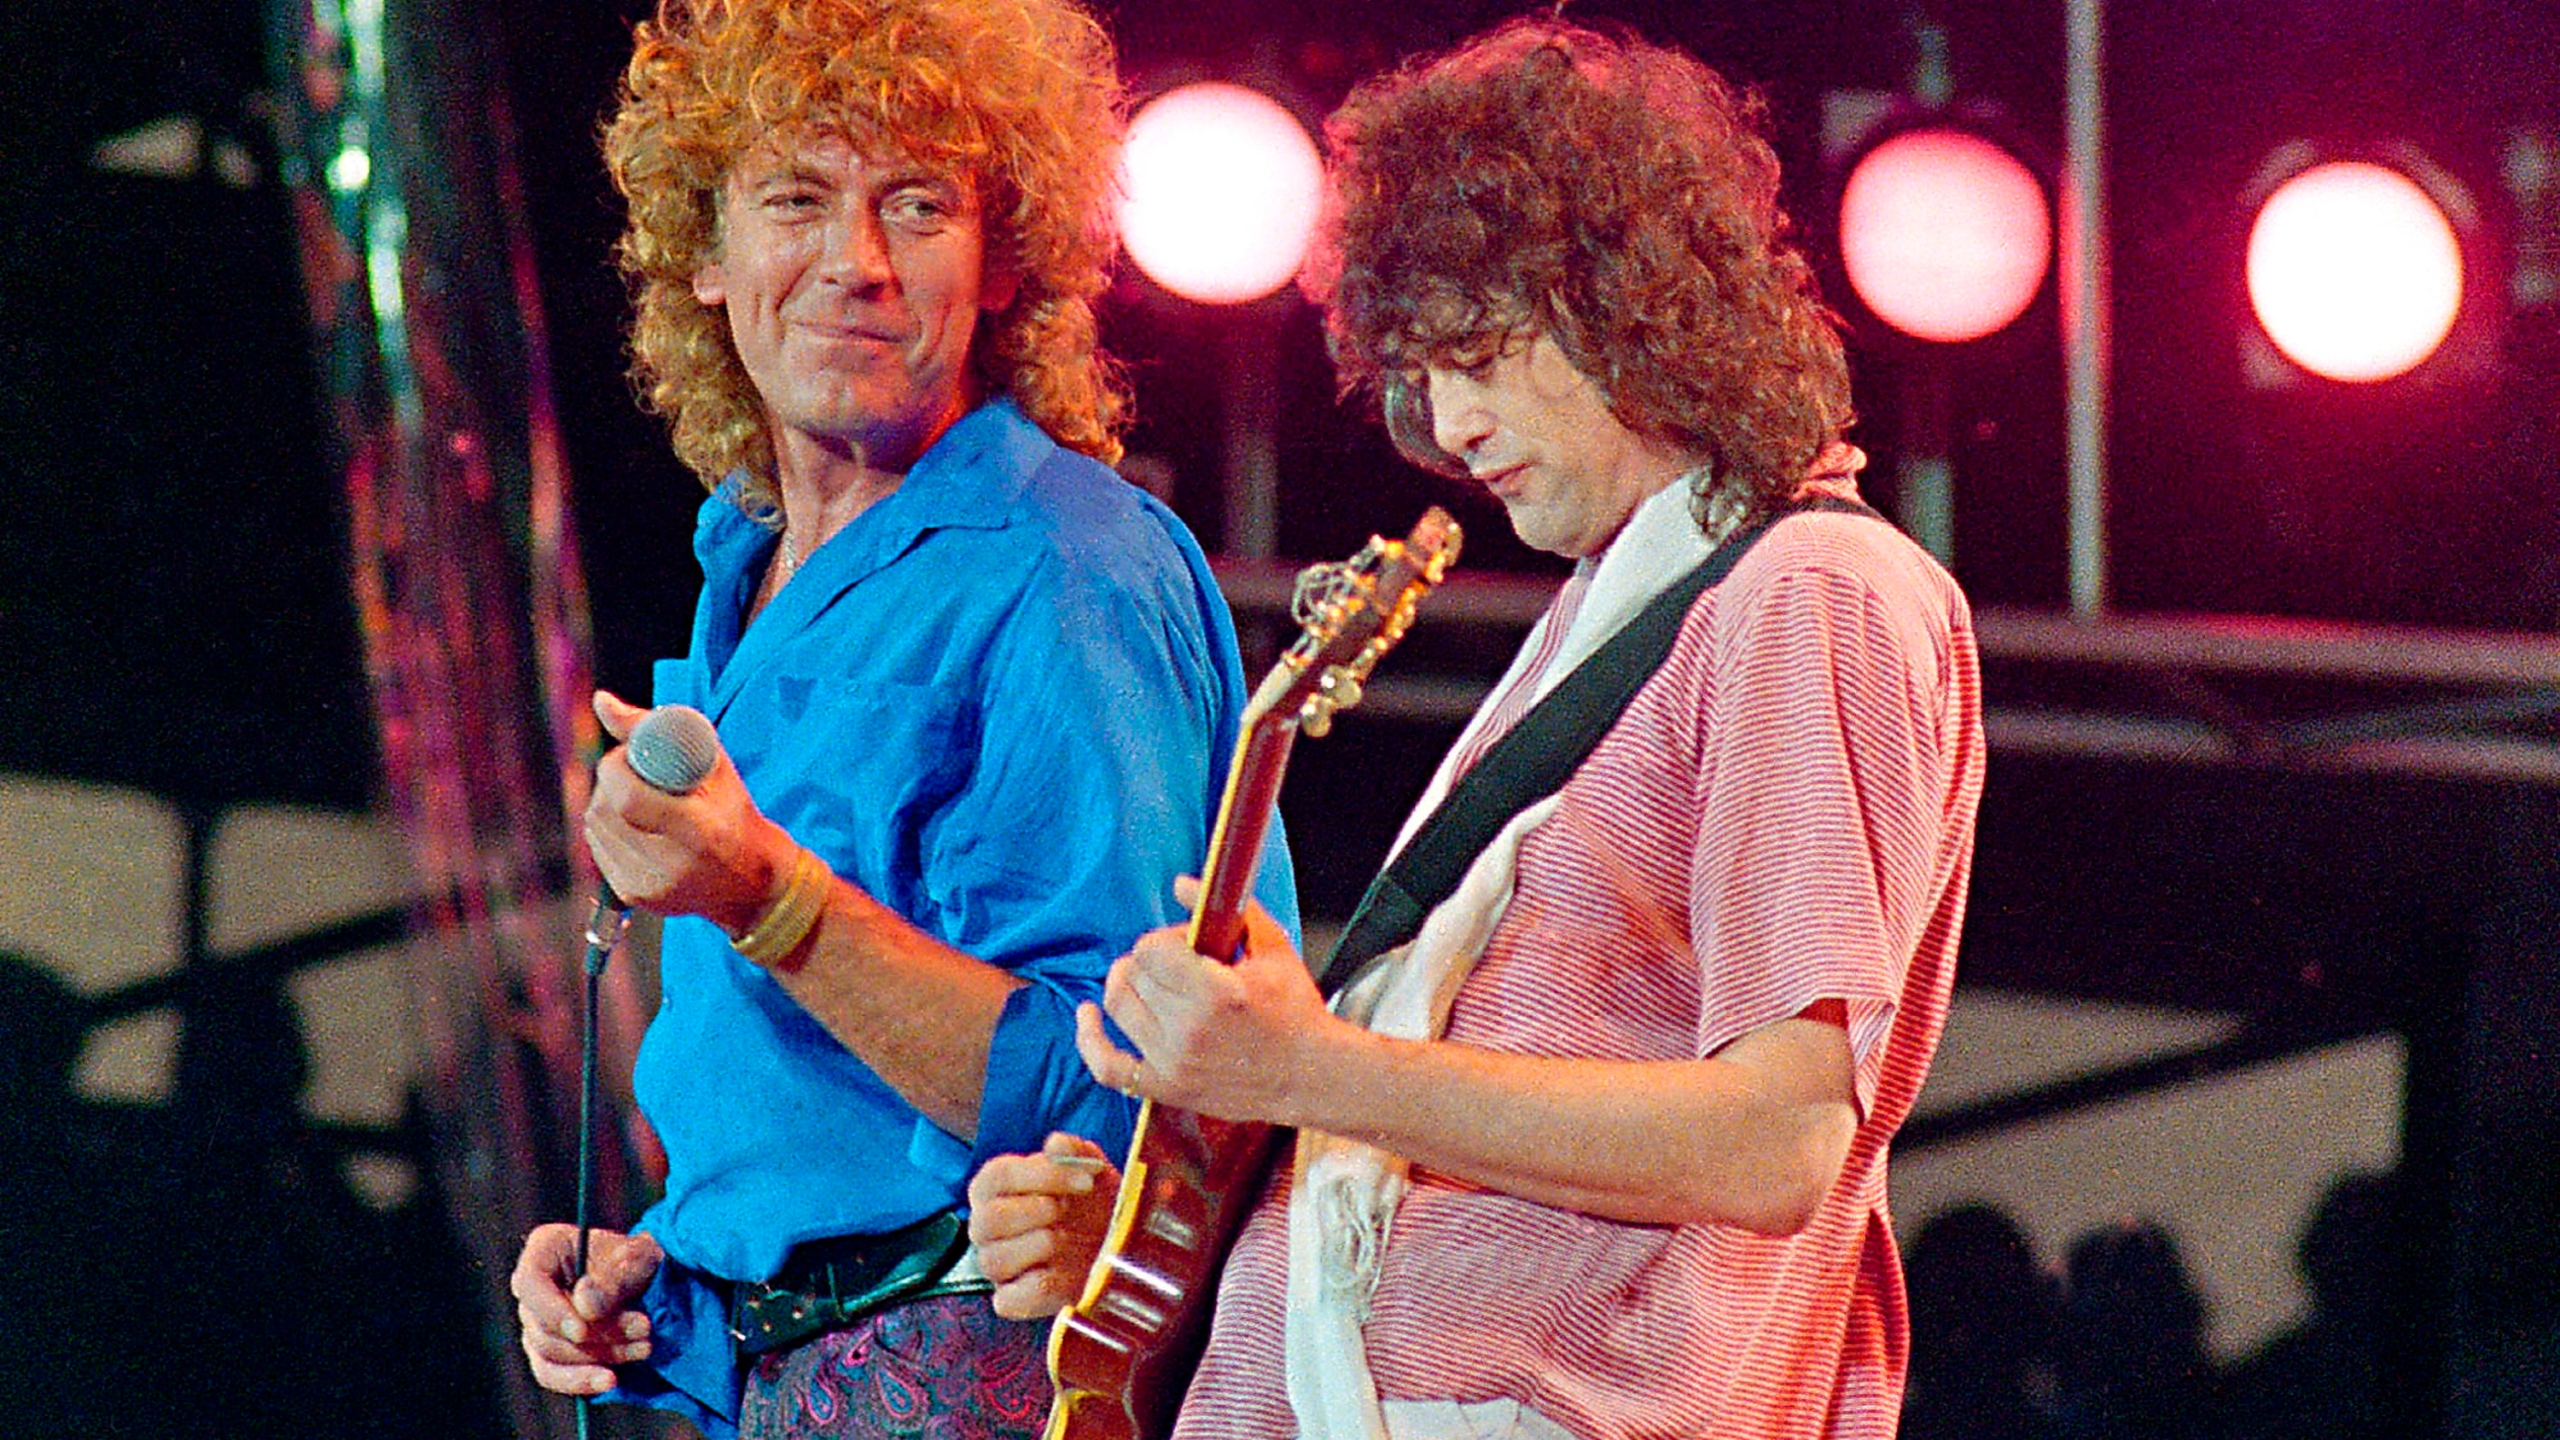 Robert Plant Jimmy Page Live Aid